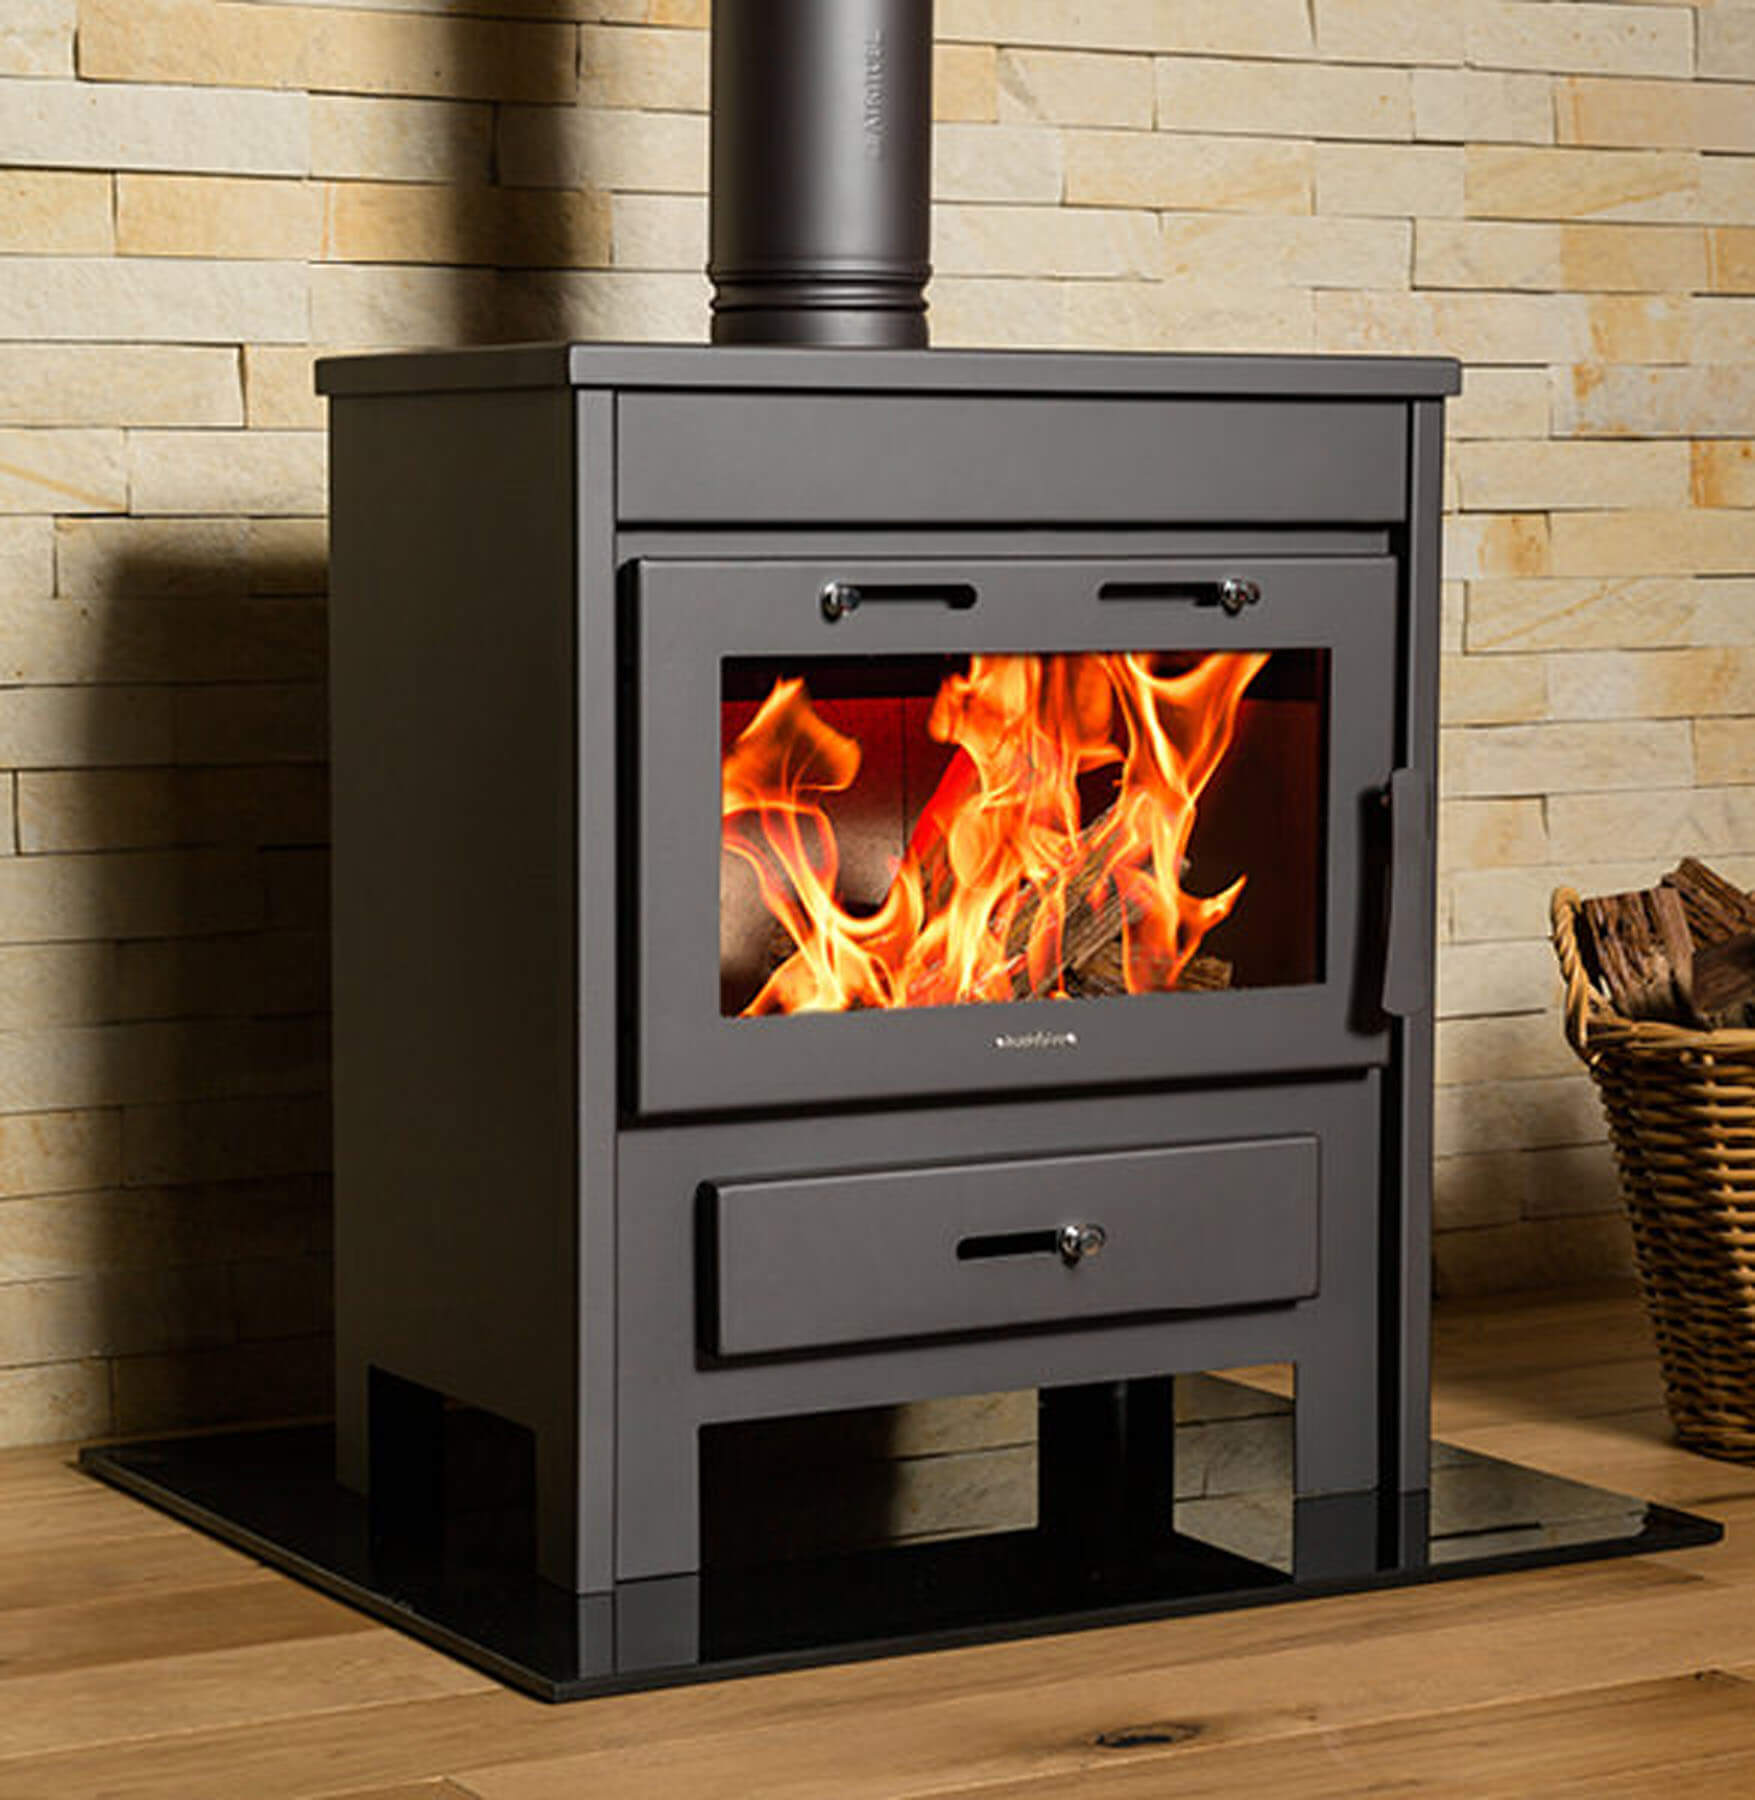 Combustion-Fireplaces-Freestanding-Ray-Max-G